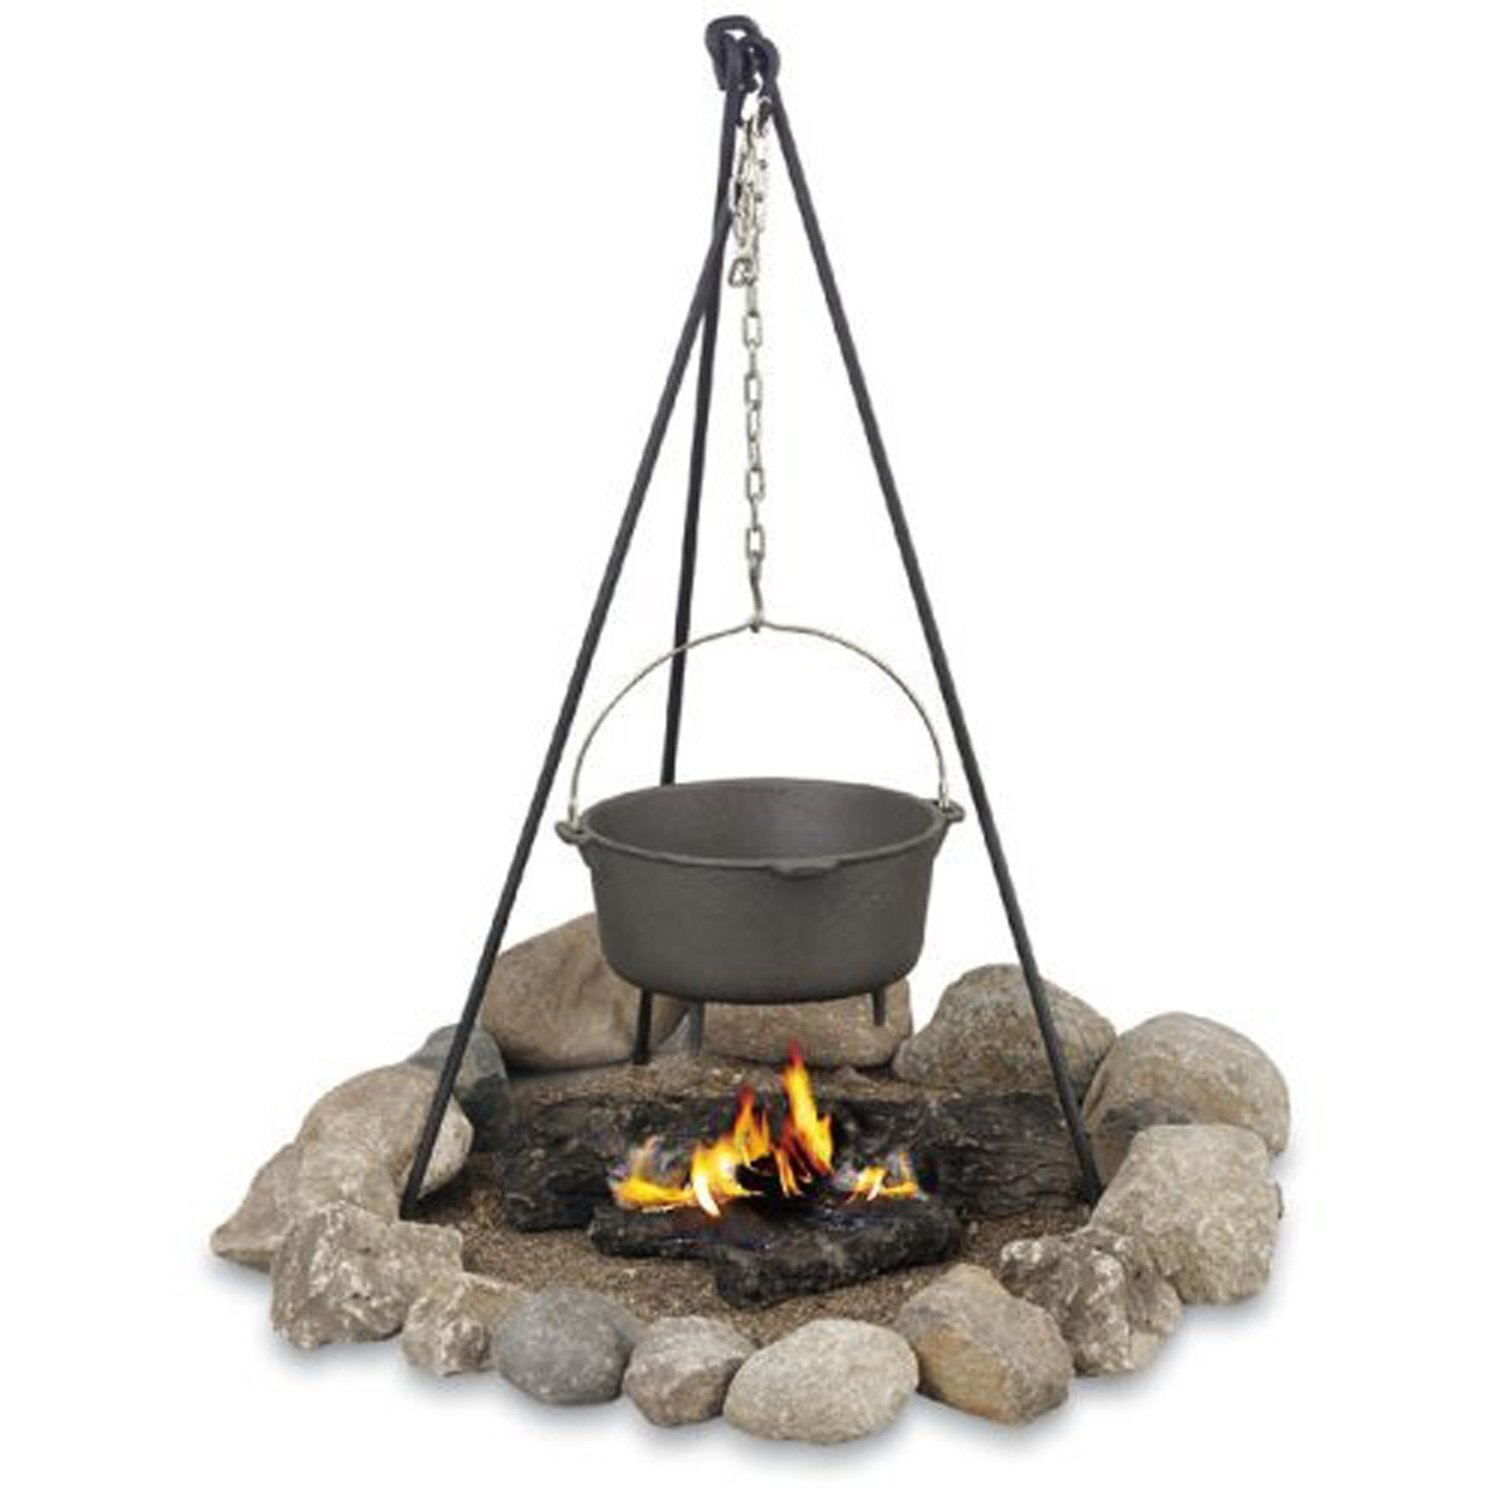 Must Haves for Cold Winter Camping | www.onecrazyhouse.com